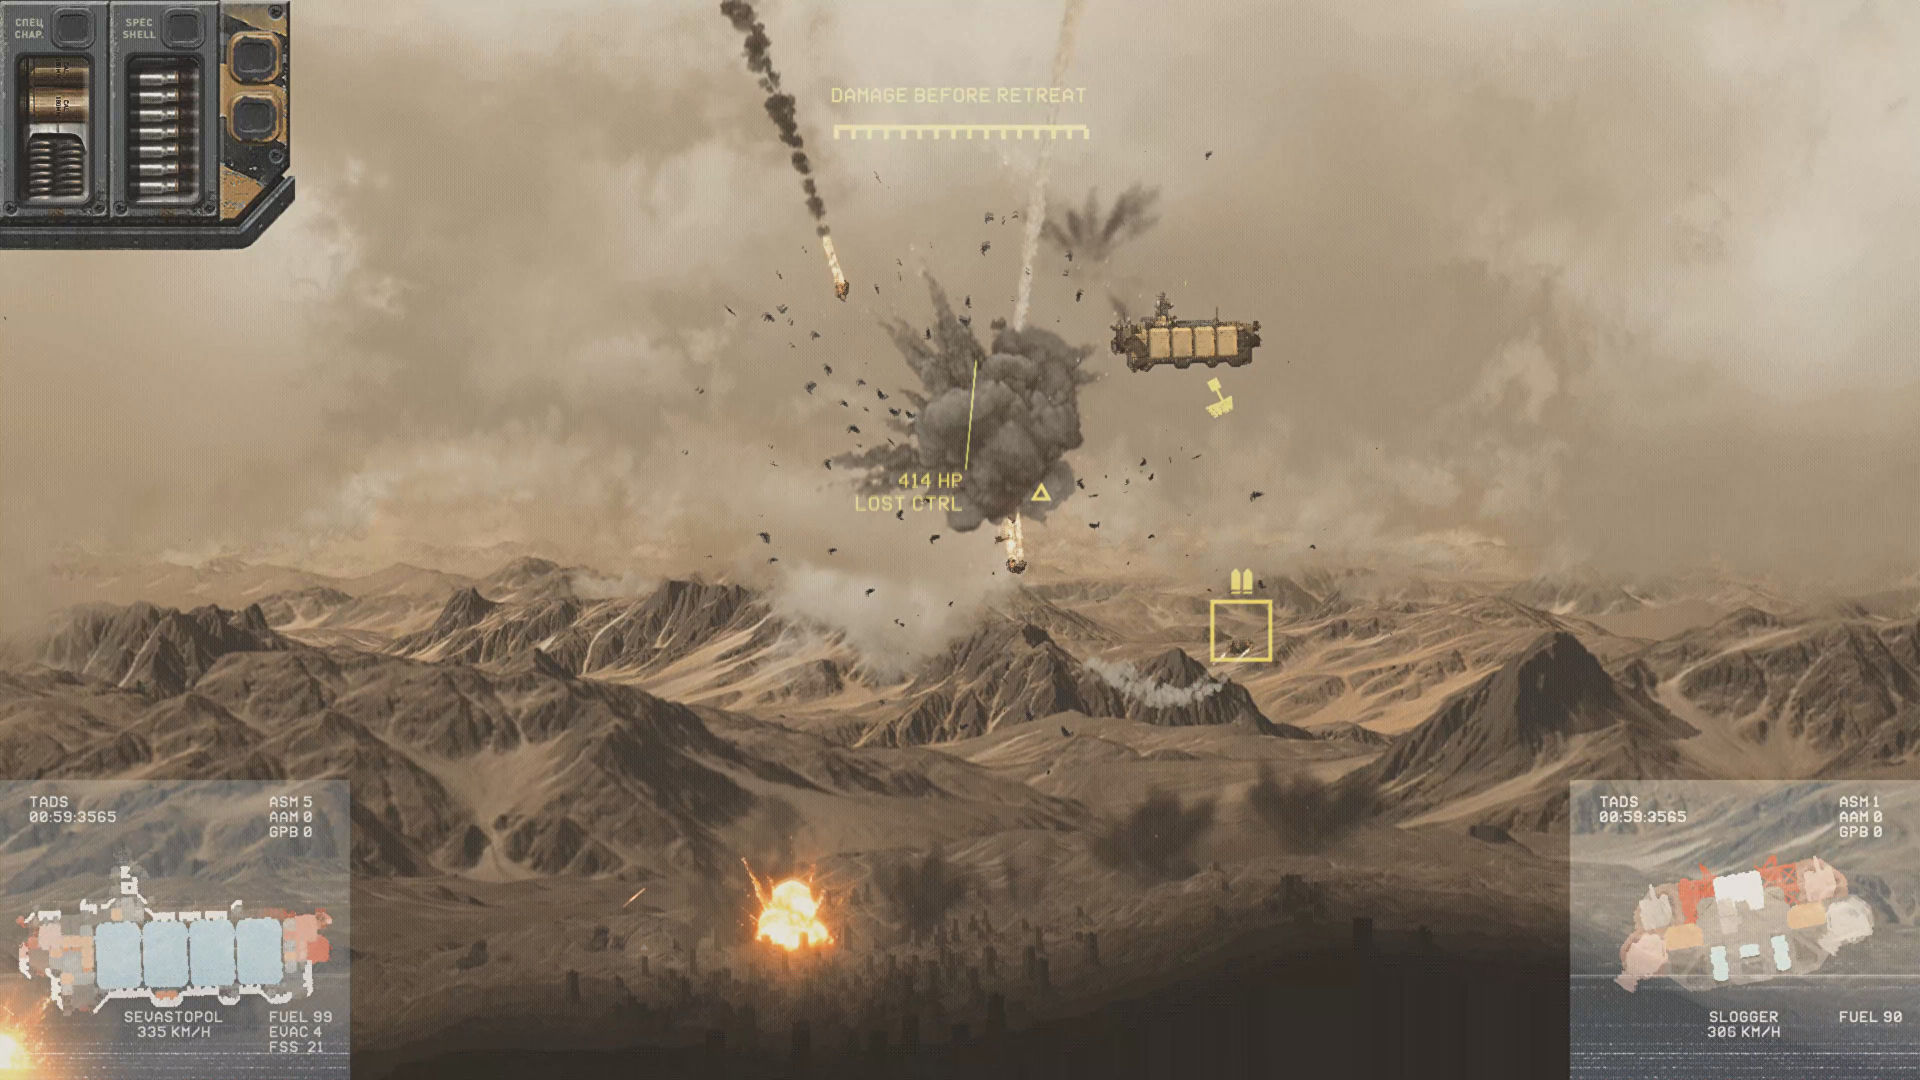 HighFleet is a futuristic action-strategy game about giant airborne ships